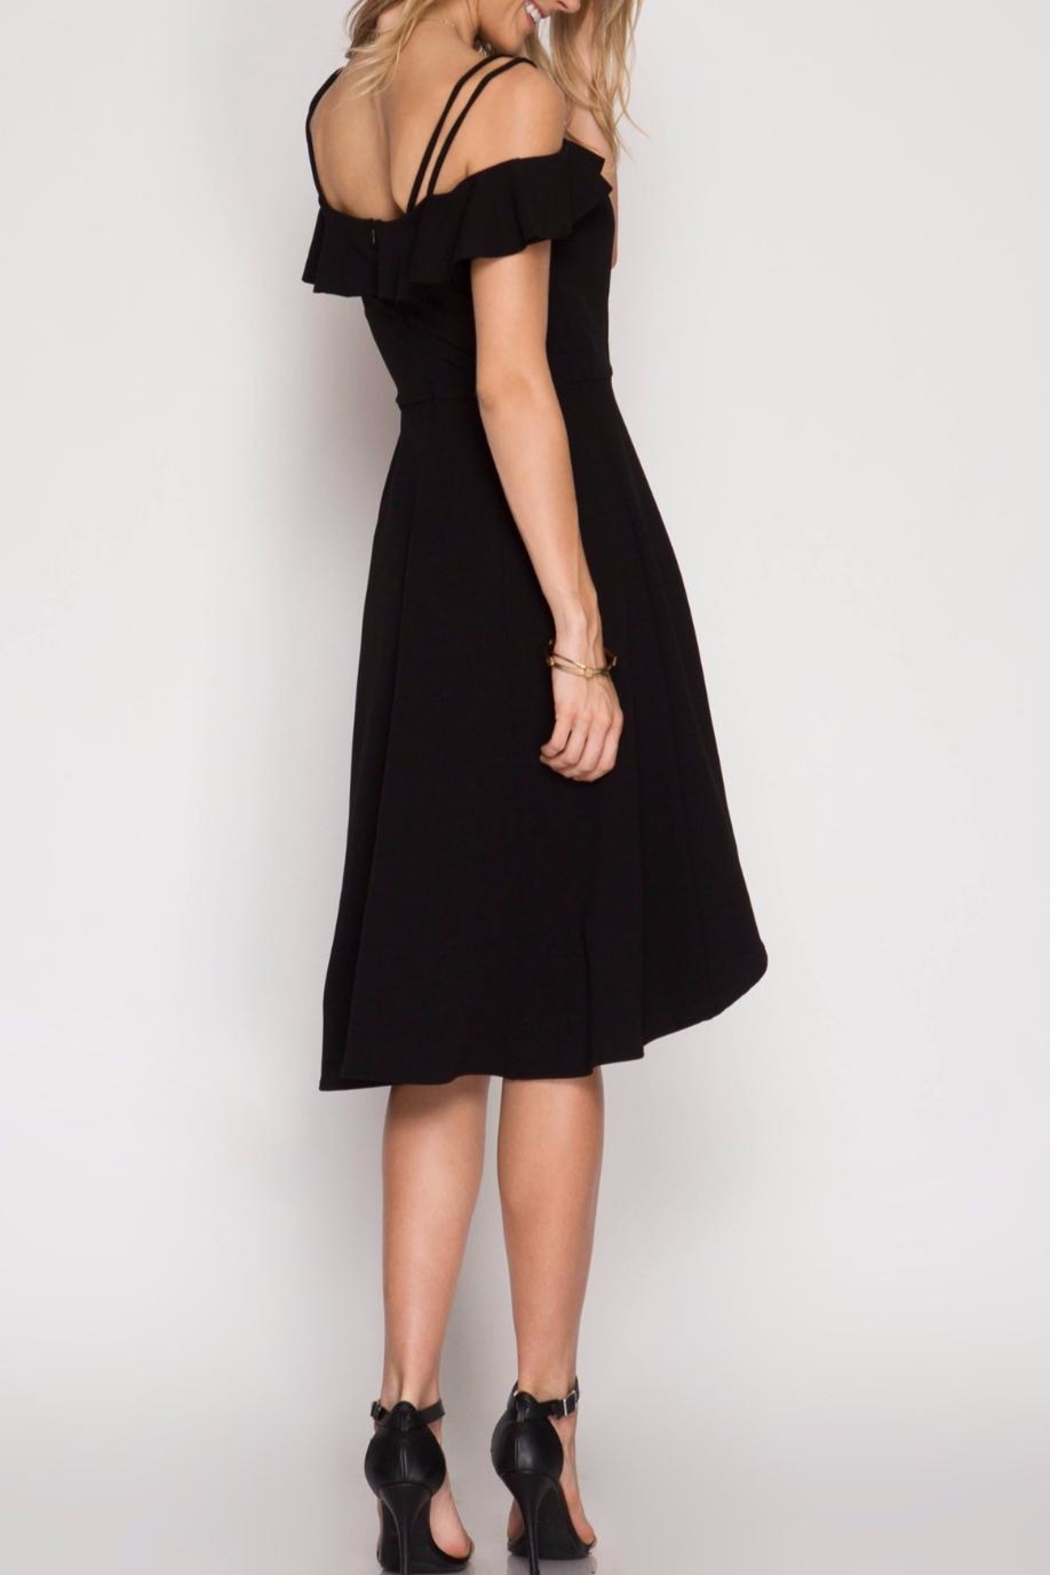 She + Sky Off Shoulder Black Dress - Front Full Image